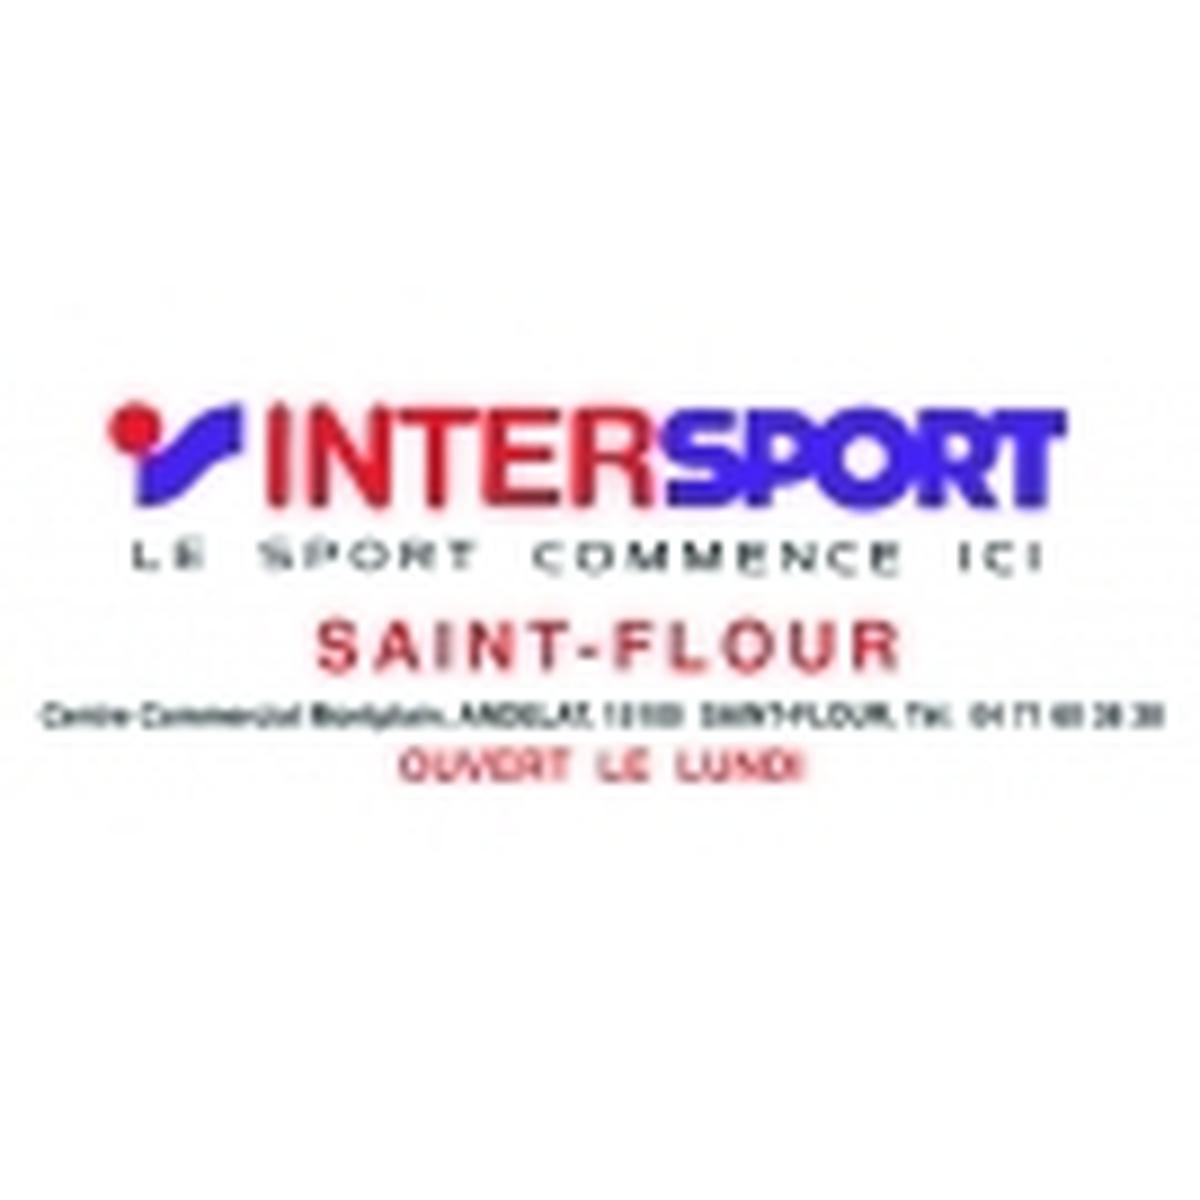 INTERSPORT SAINT-FLOUR